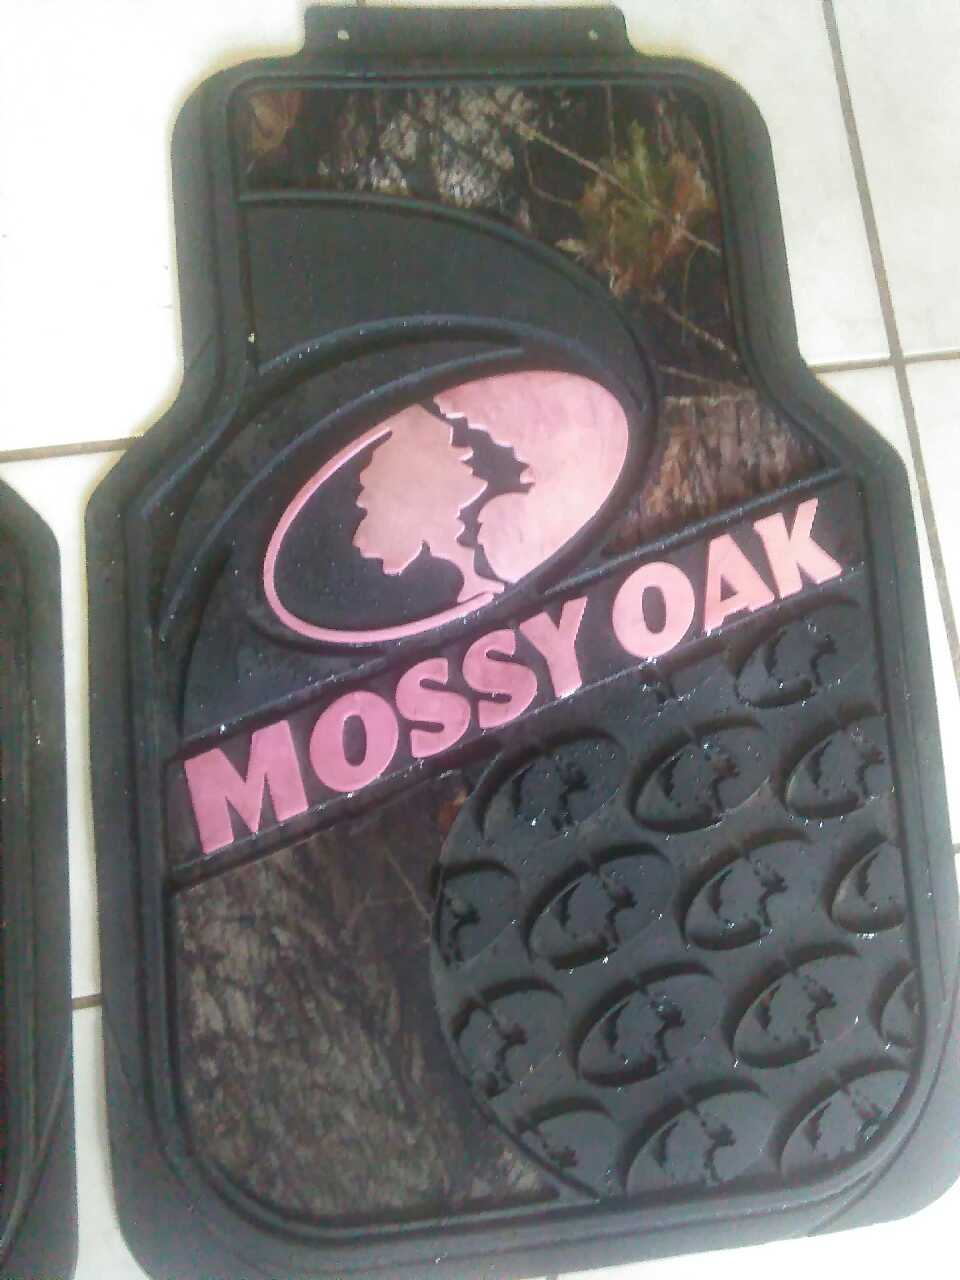 Used treaded mossy oak pink camo floor mats almost new condition